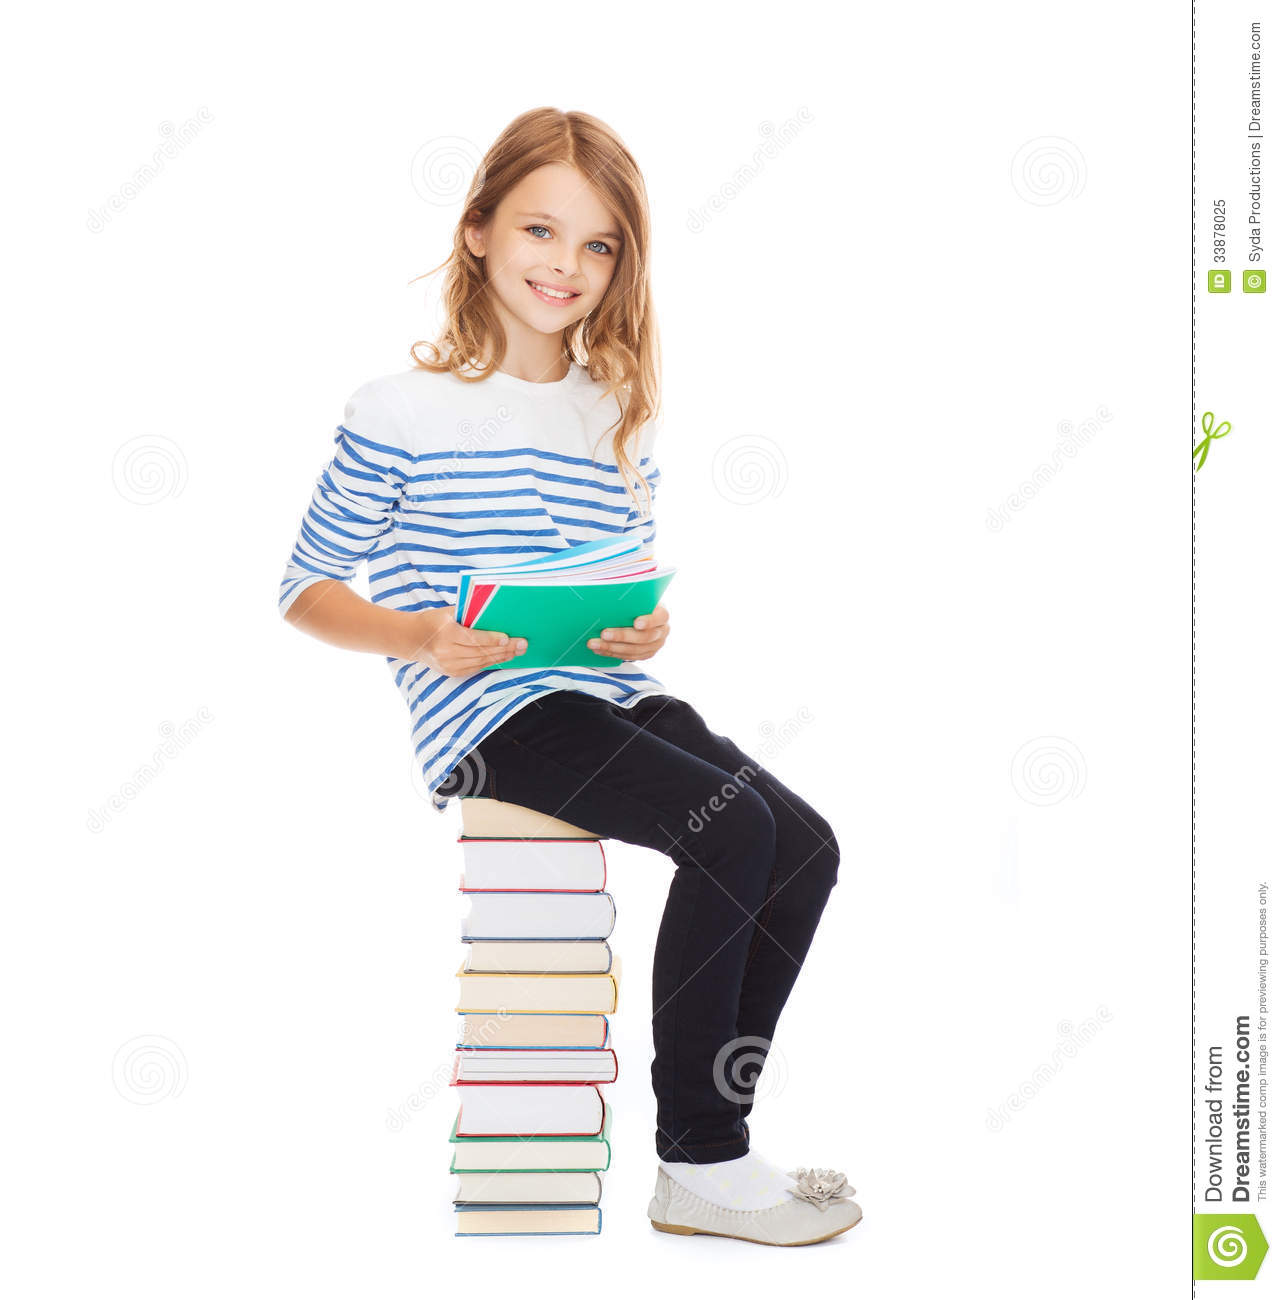 little student girl sitting stack books education school concept 33878025 An Analysis Of Fast Systems For essay tiger reviews reviewingwriting